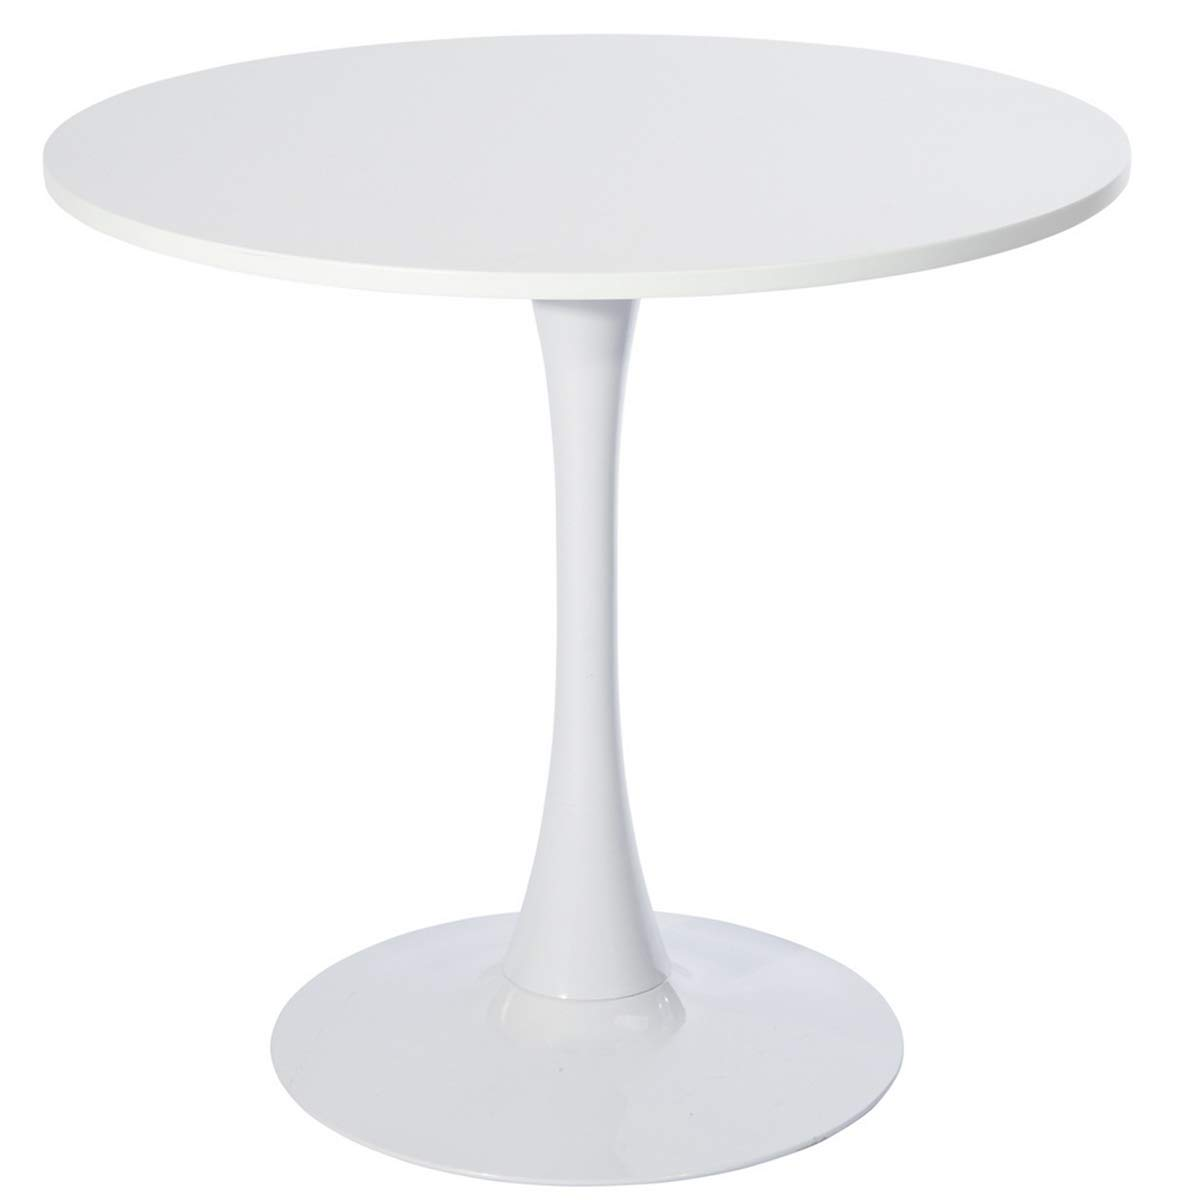 GreenForest Round Dining Table Mid-Century Modern Tulip Pedestal Leisure Table with Srong Metal Base, White by GreenForest